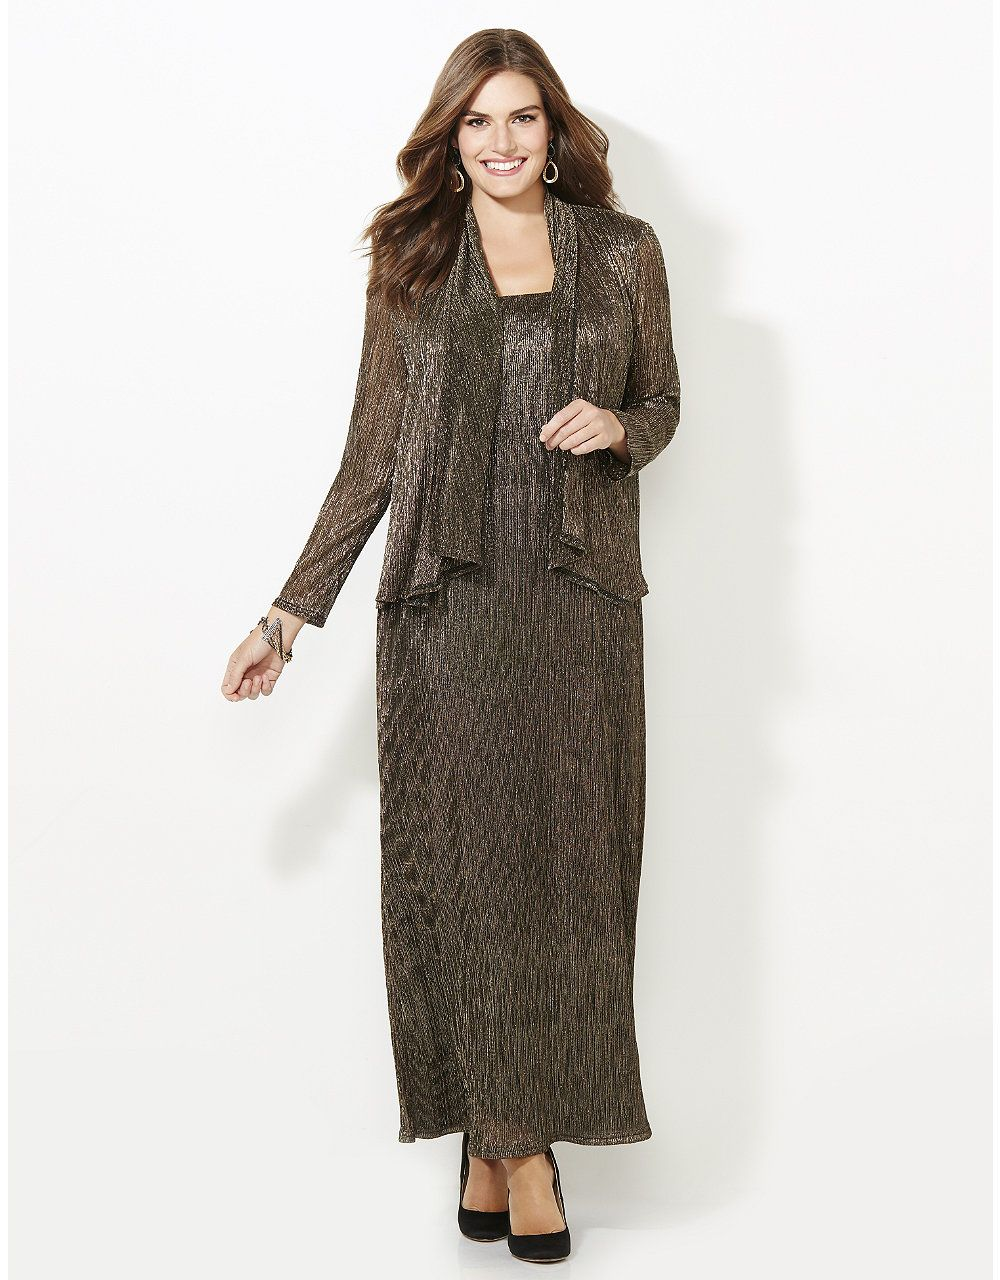 Beaded jacket dress plus size